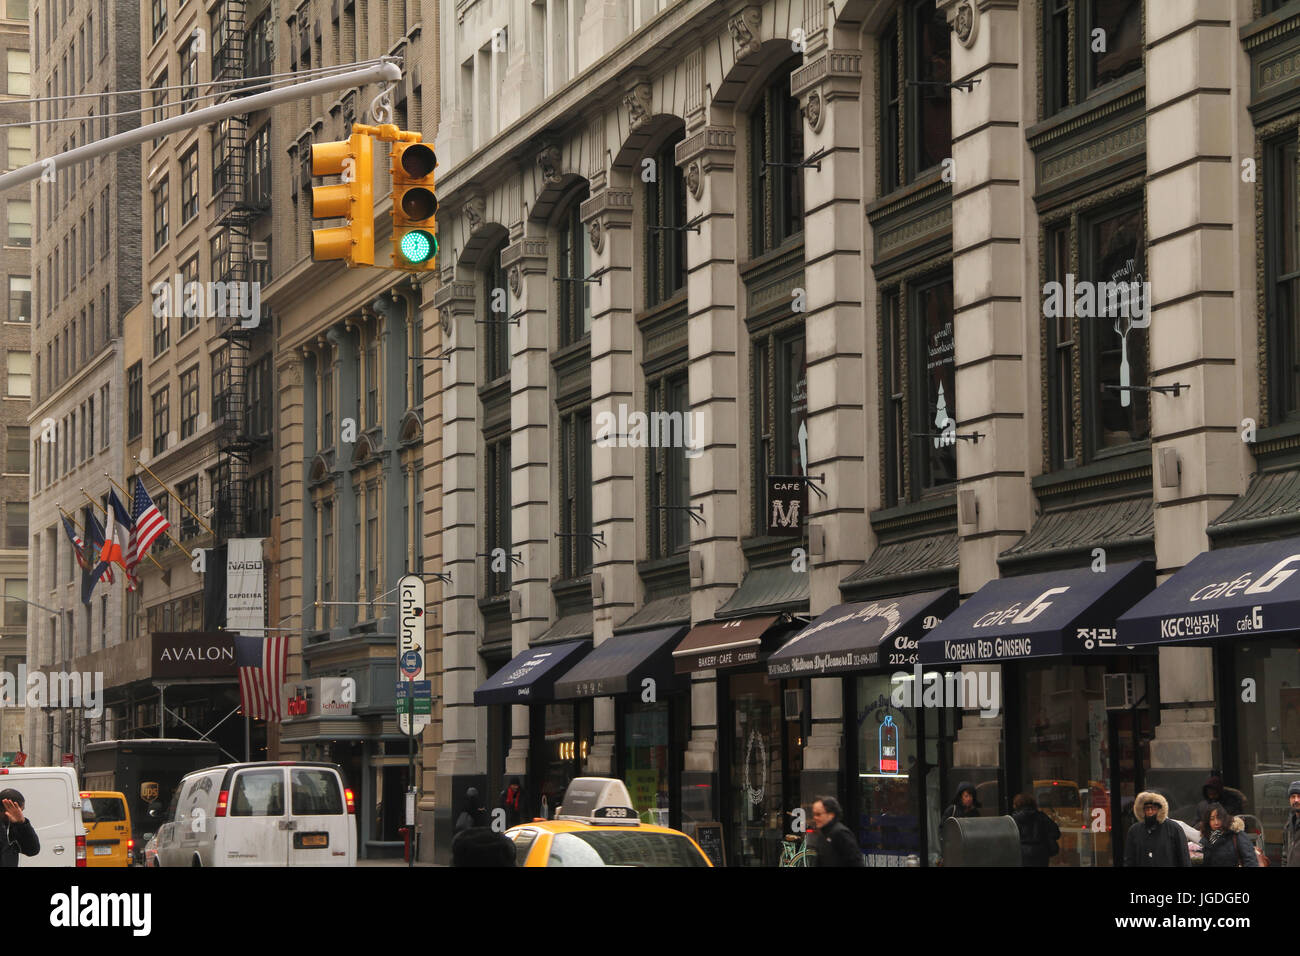 Fifth avenue, Times Square, New York, United States - Stock Image